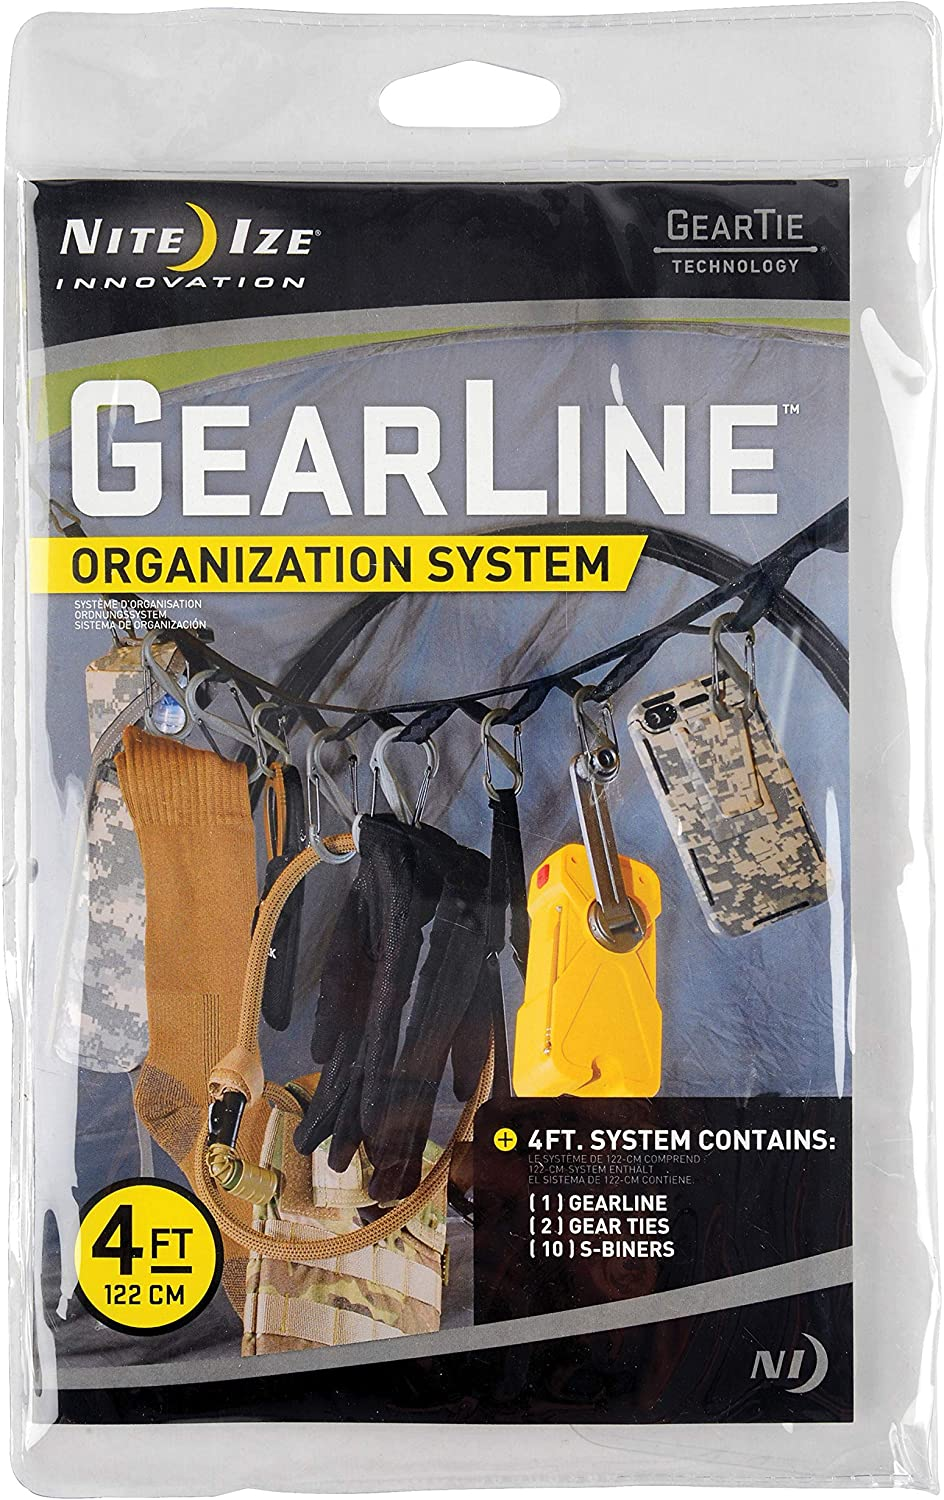 Nite Ize GearLine Hanging Organization System + Bendable Gear Tie Ends To Hang Your Gear Anywhere 4 FT Webbing With Loops Colorful S-Biners S-Biner Clips